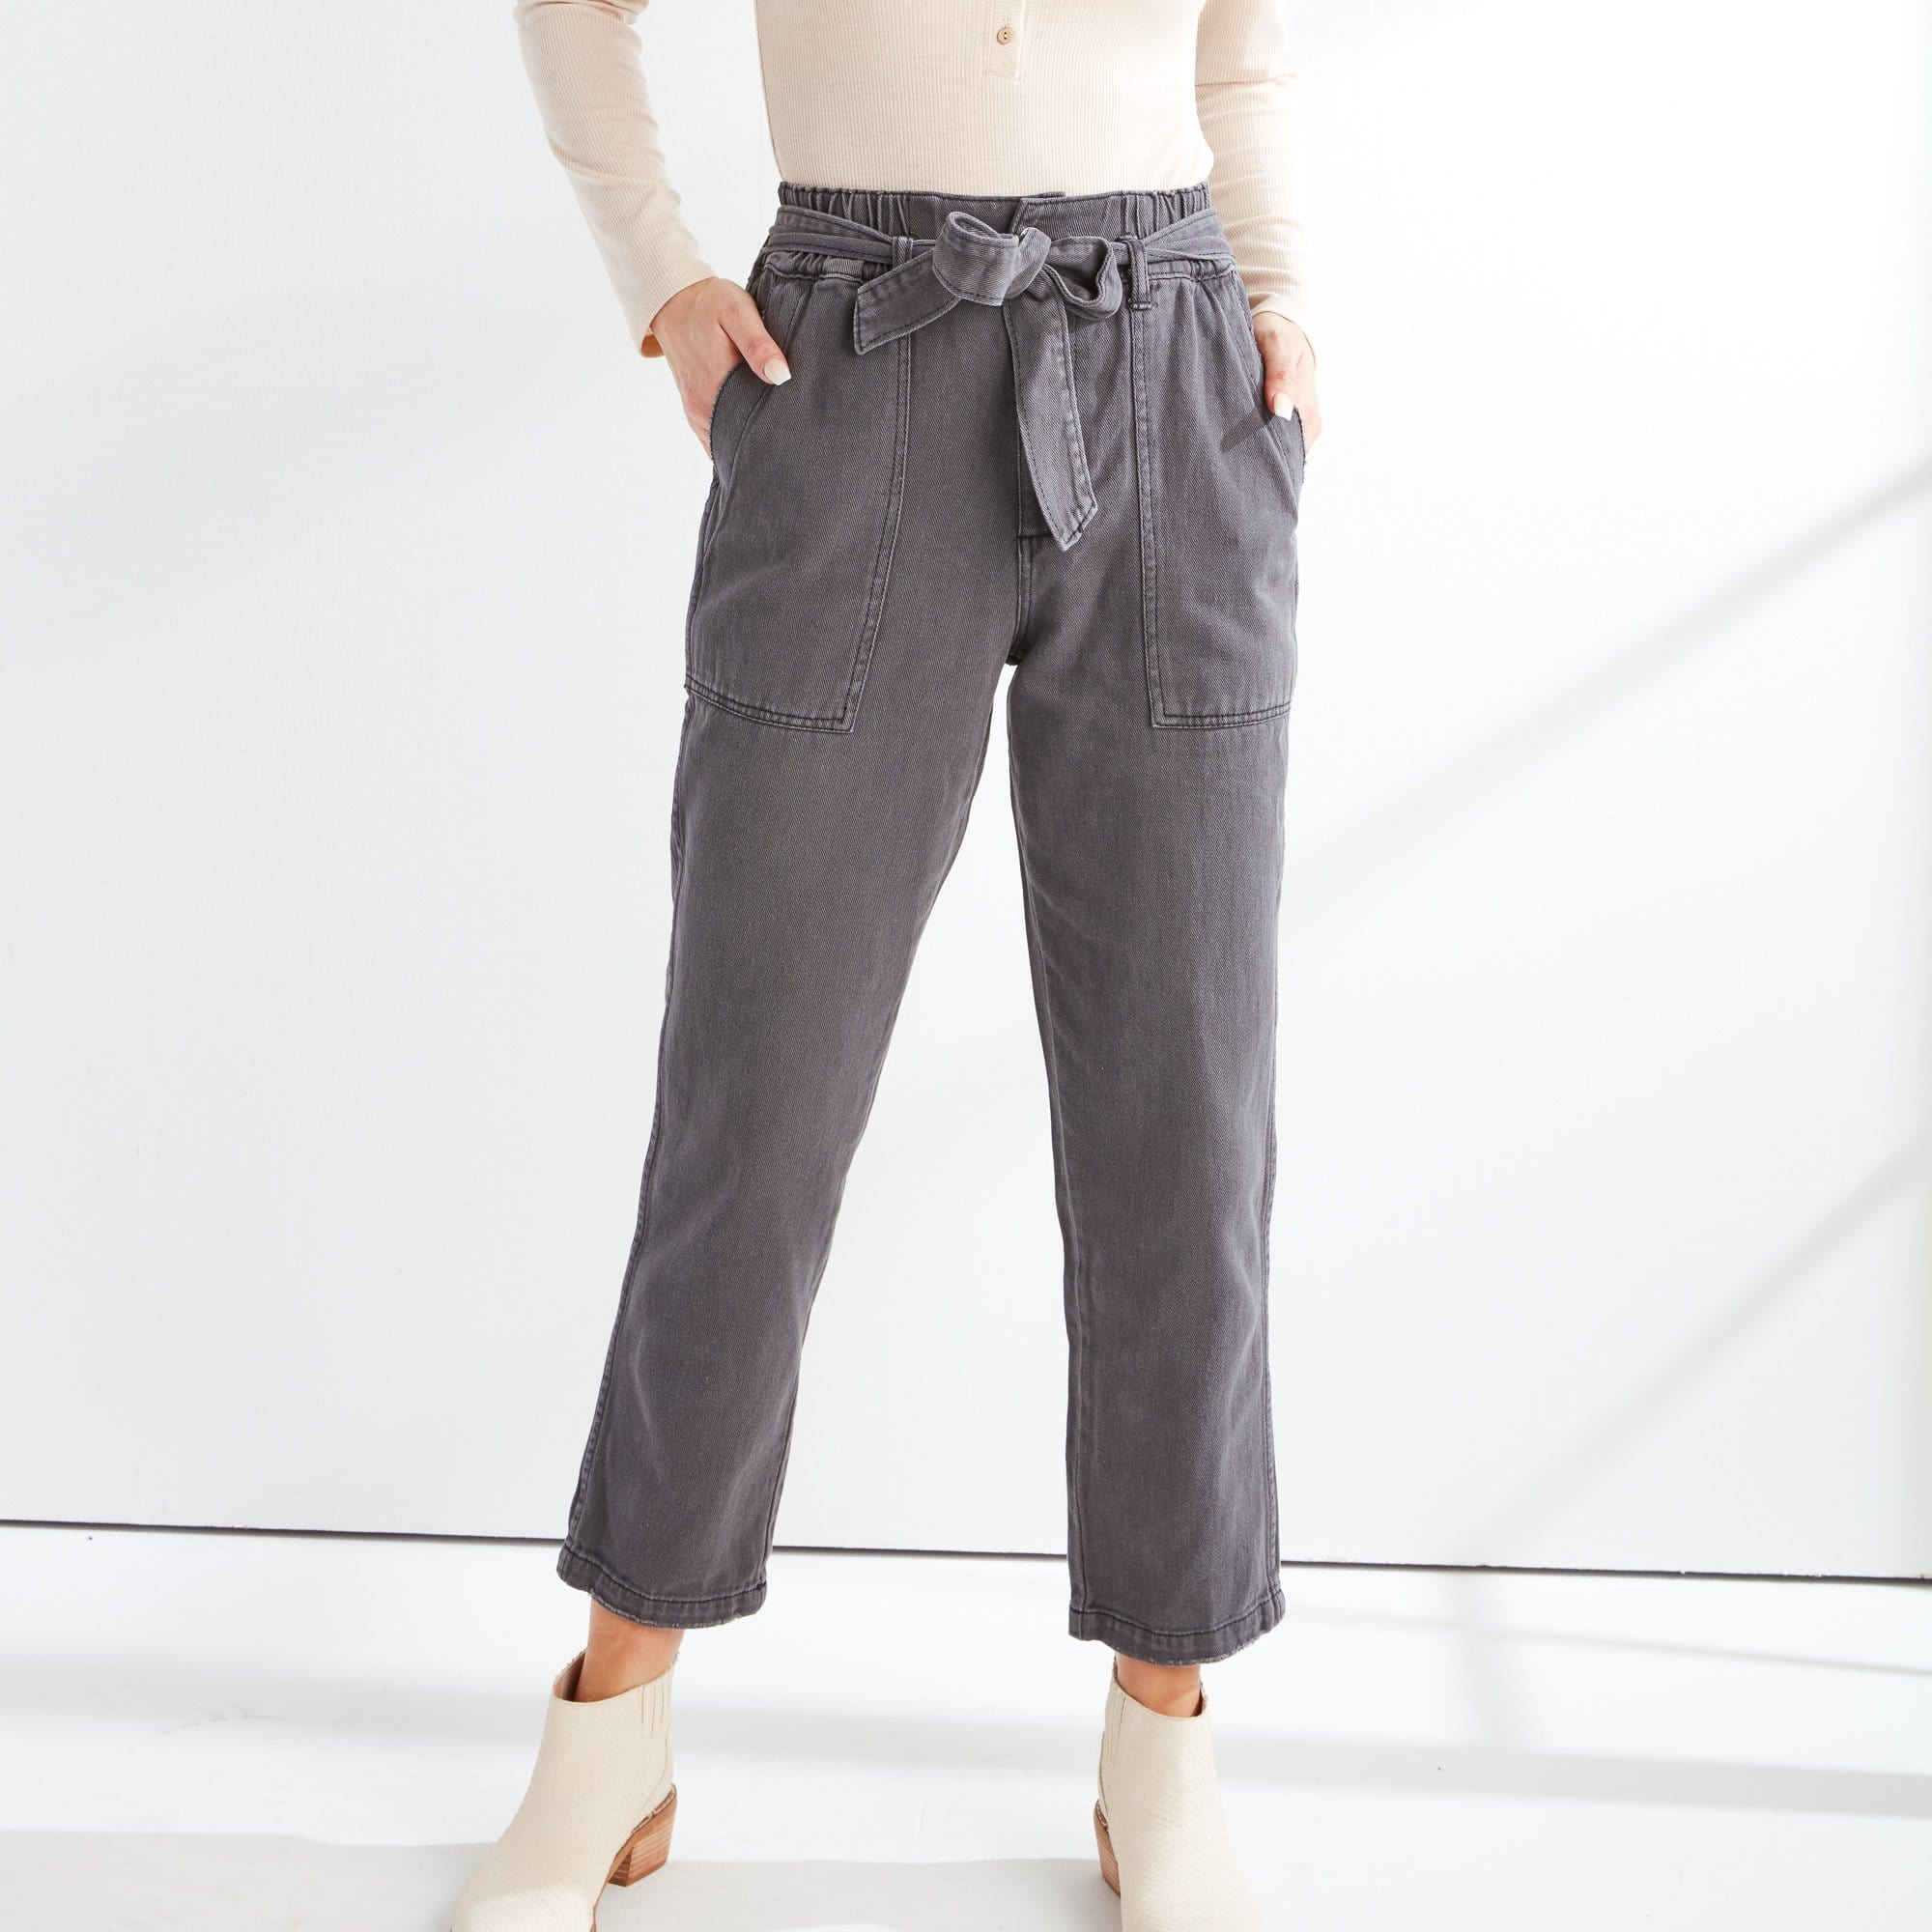 Utility Pant with Tie